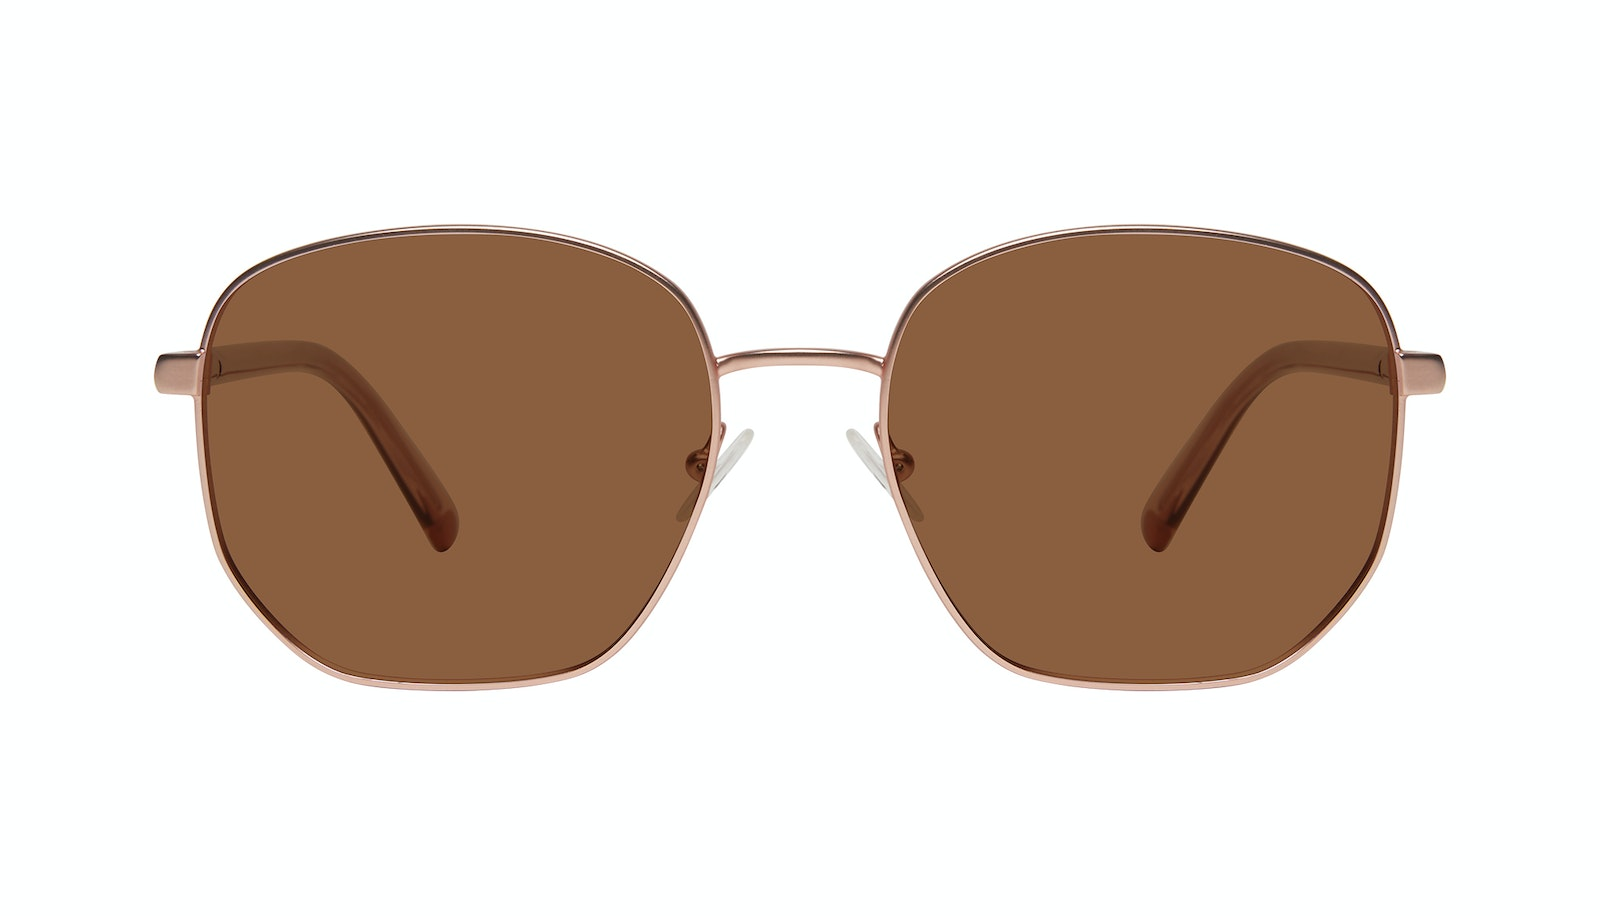 Affordable Fashion Glasses Round Sunglasses Women Laïka Rose Gold Matte